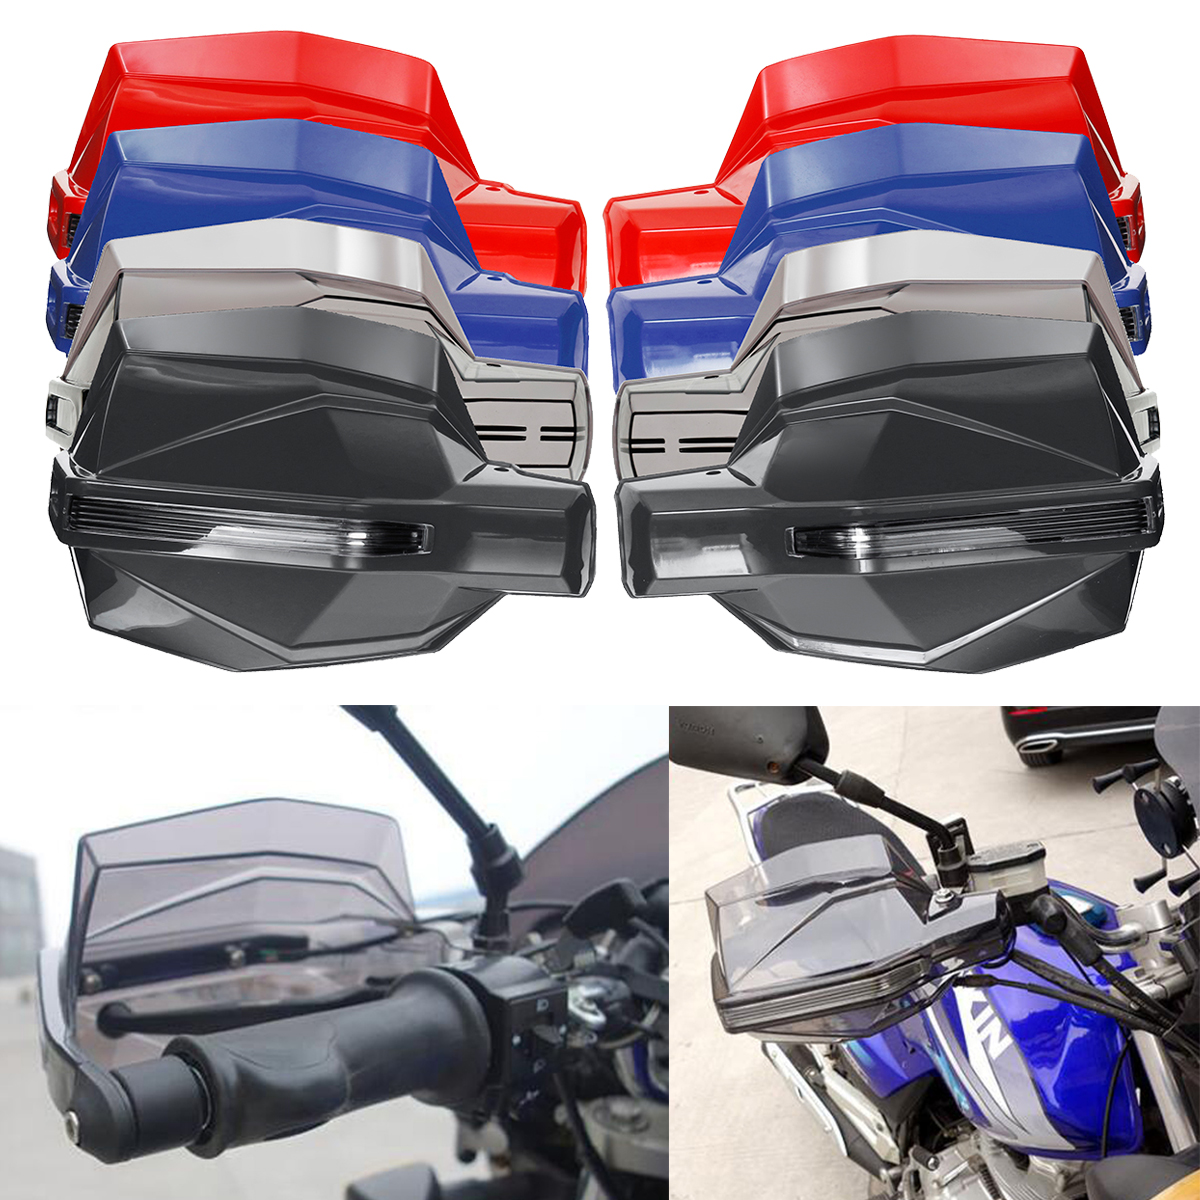 Motorcycle Motocross Enduro Dirt Bike Handguard Brush Shield Windproof Protector Universal Hand Guard Motorbike Protective Gear